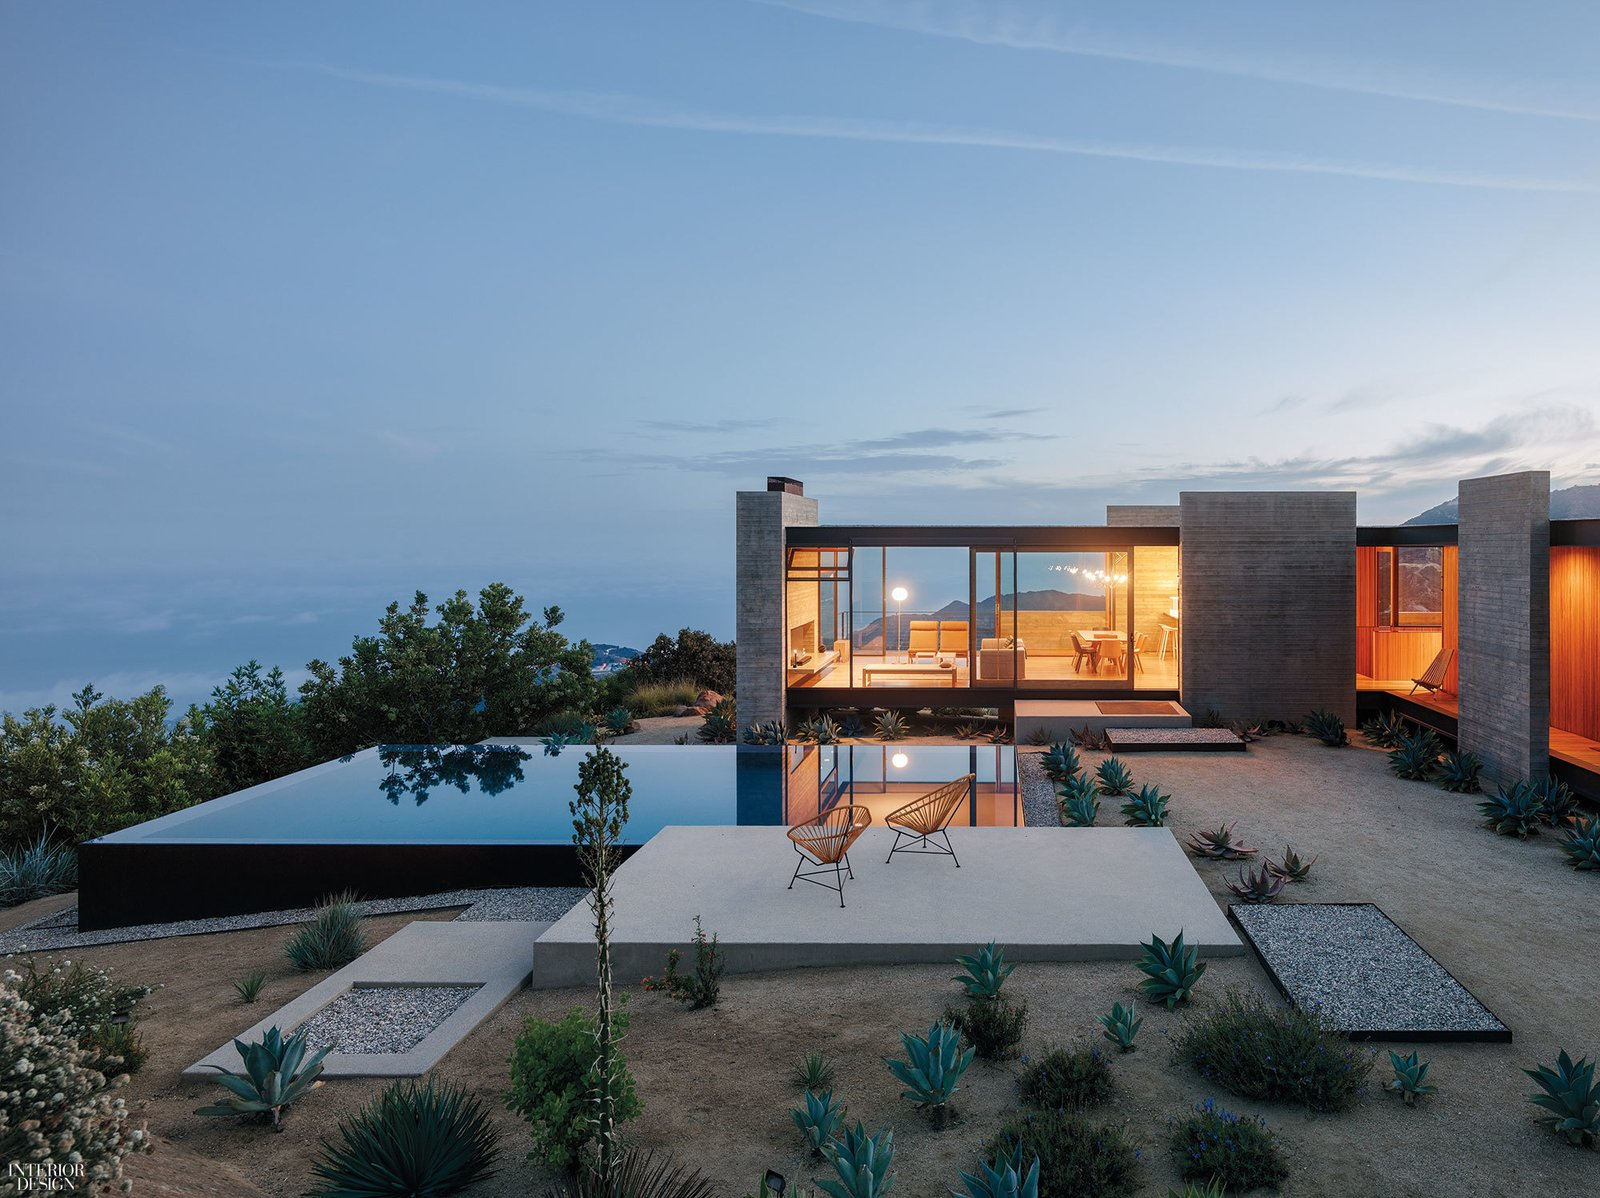 Exterior and House Building Type Saddle Peak House, Topanga Canyon by Sant Architects. Interiors by Context Gallery.  Topanga House by Context Gallery